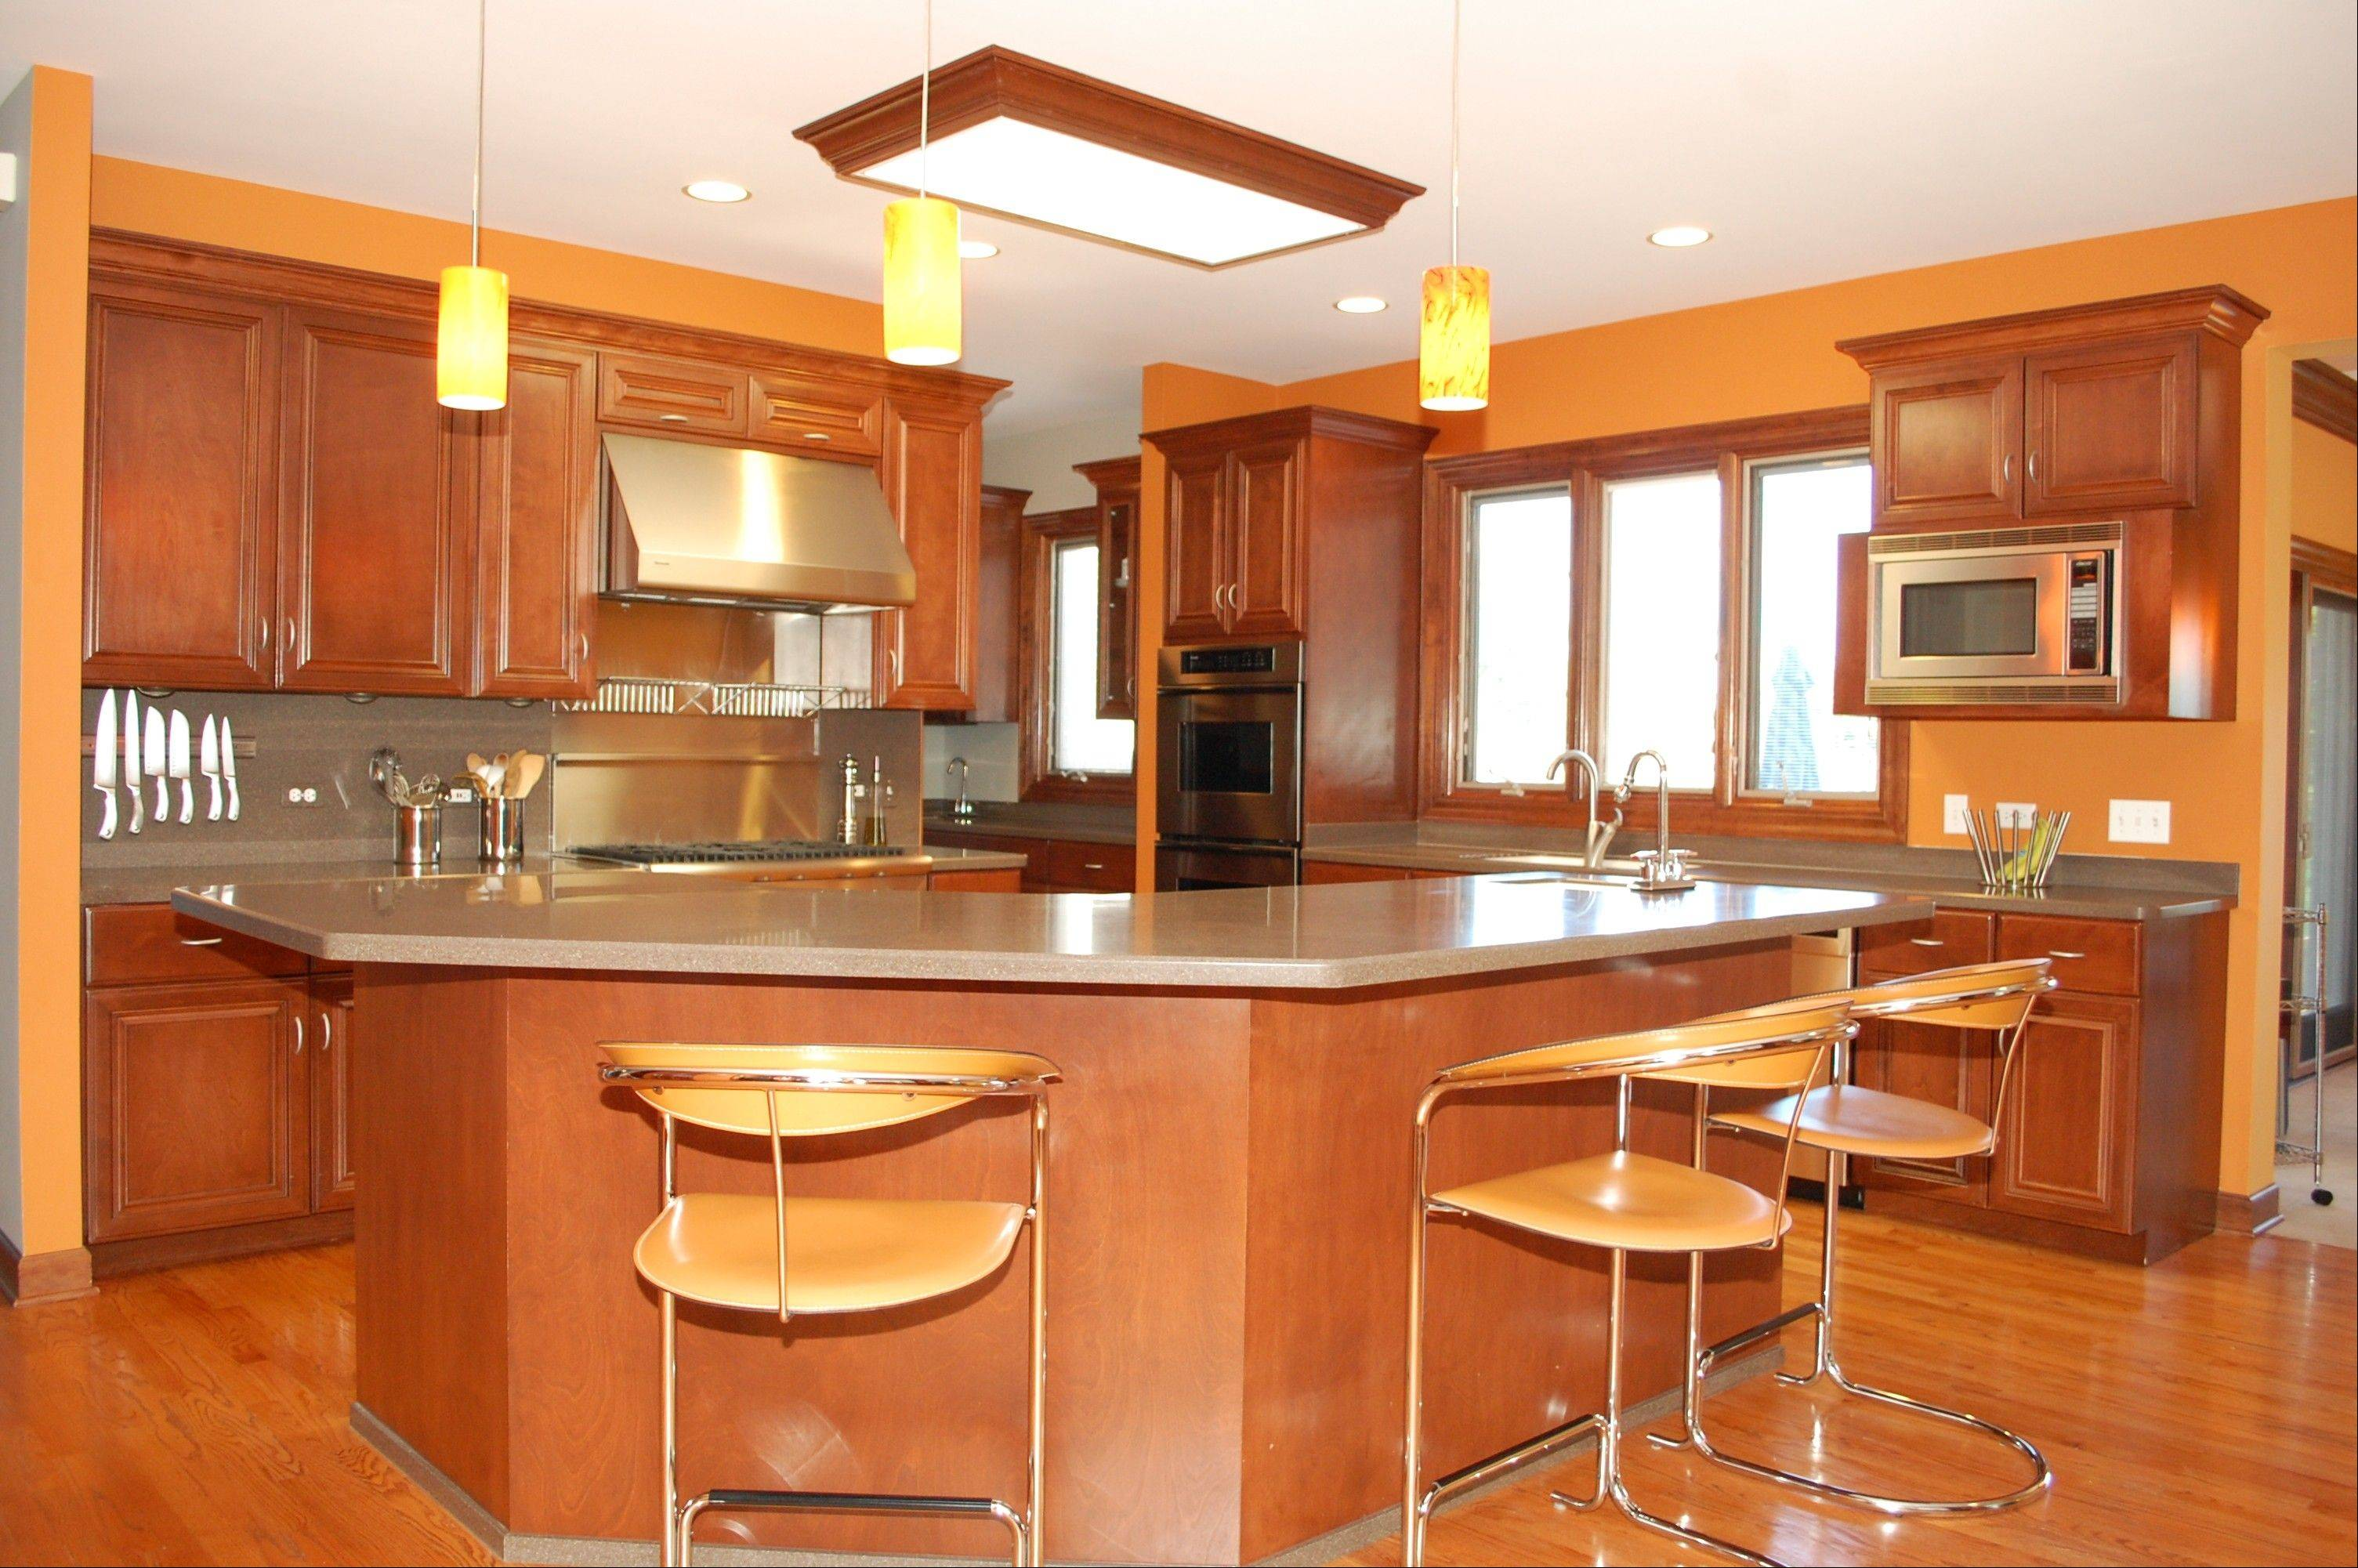 The kitchen features many high-end amenities.